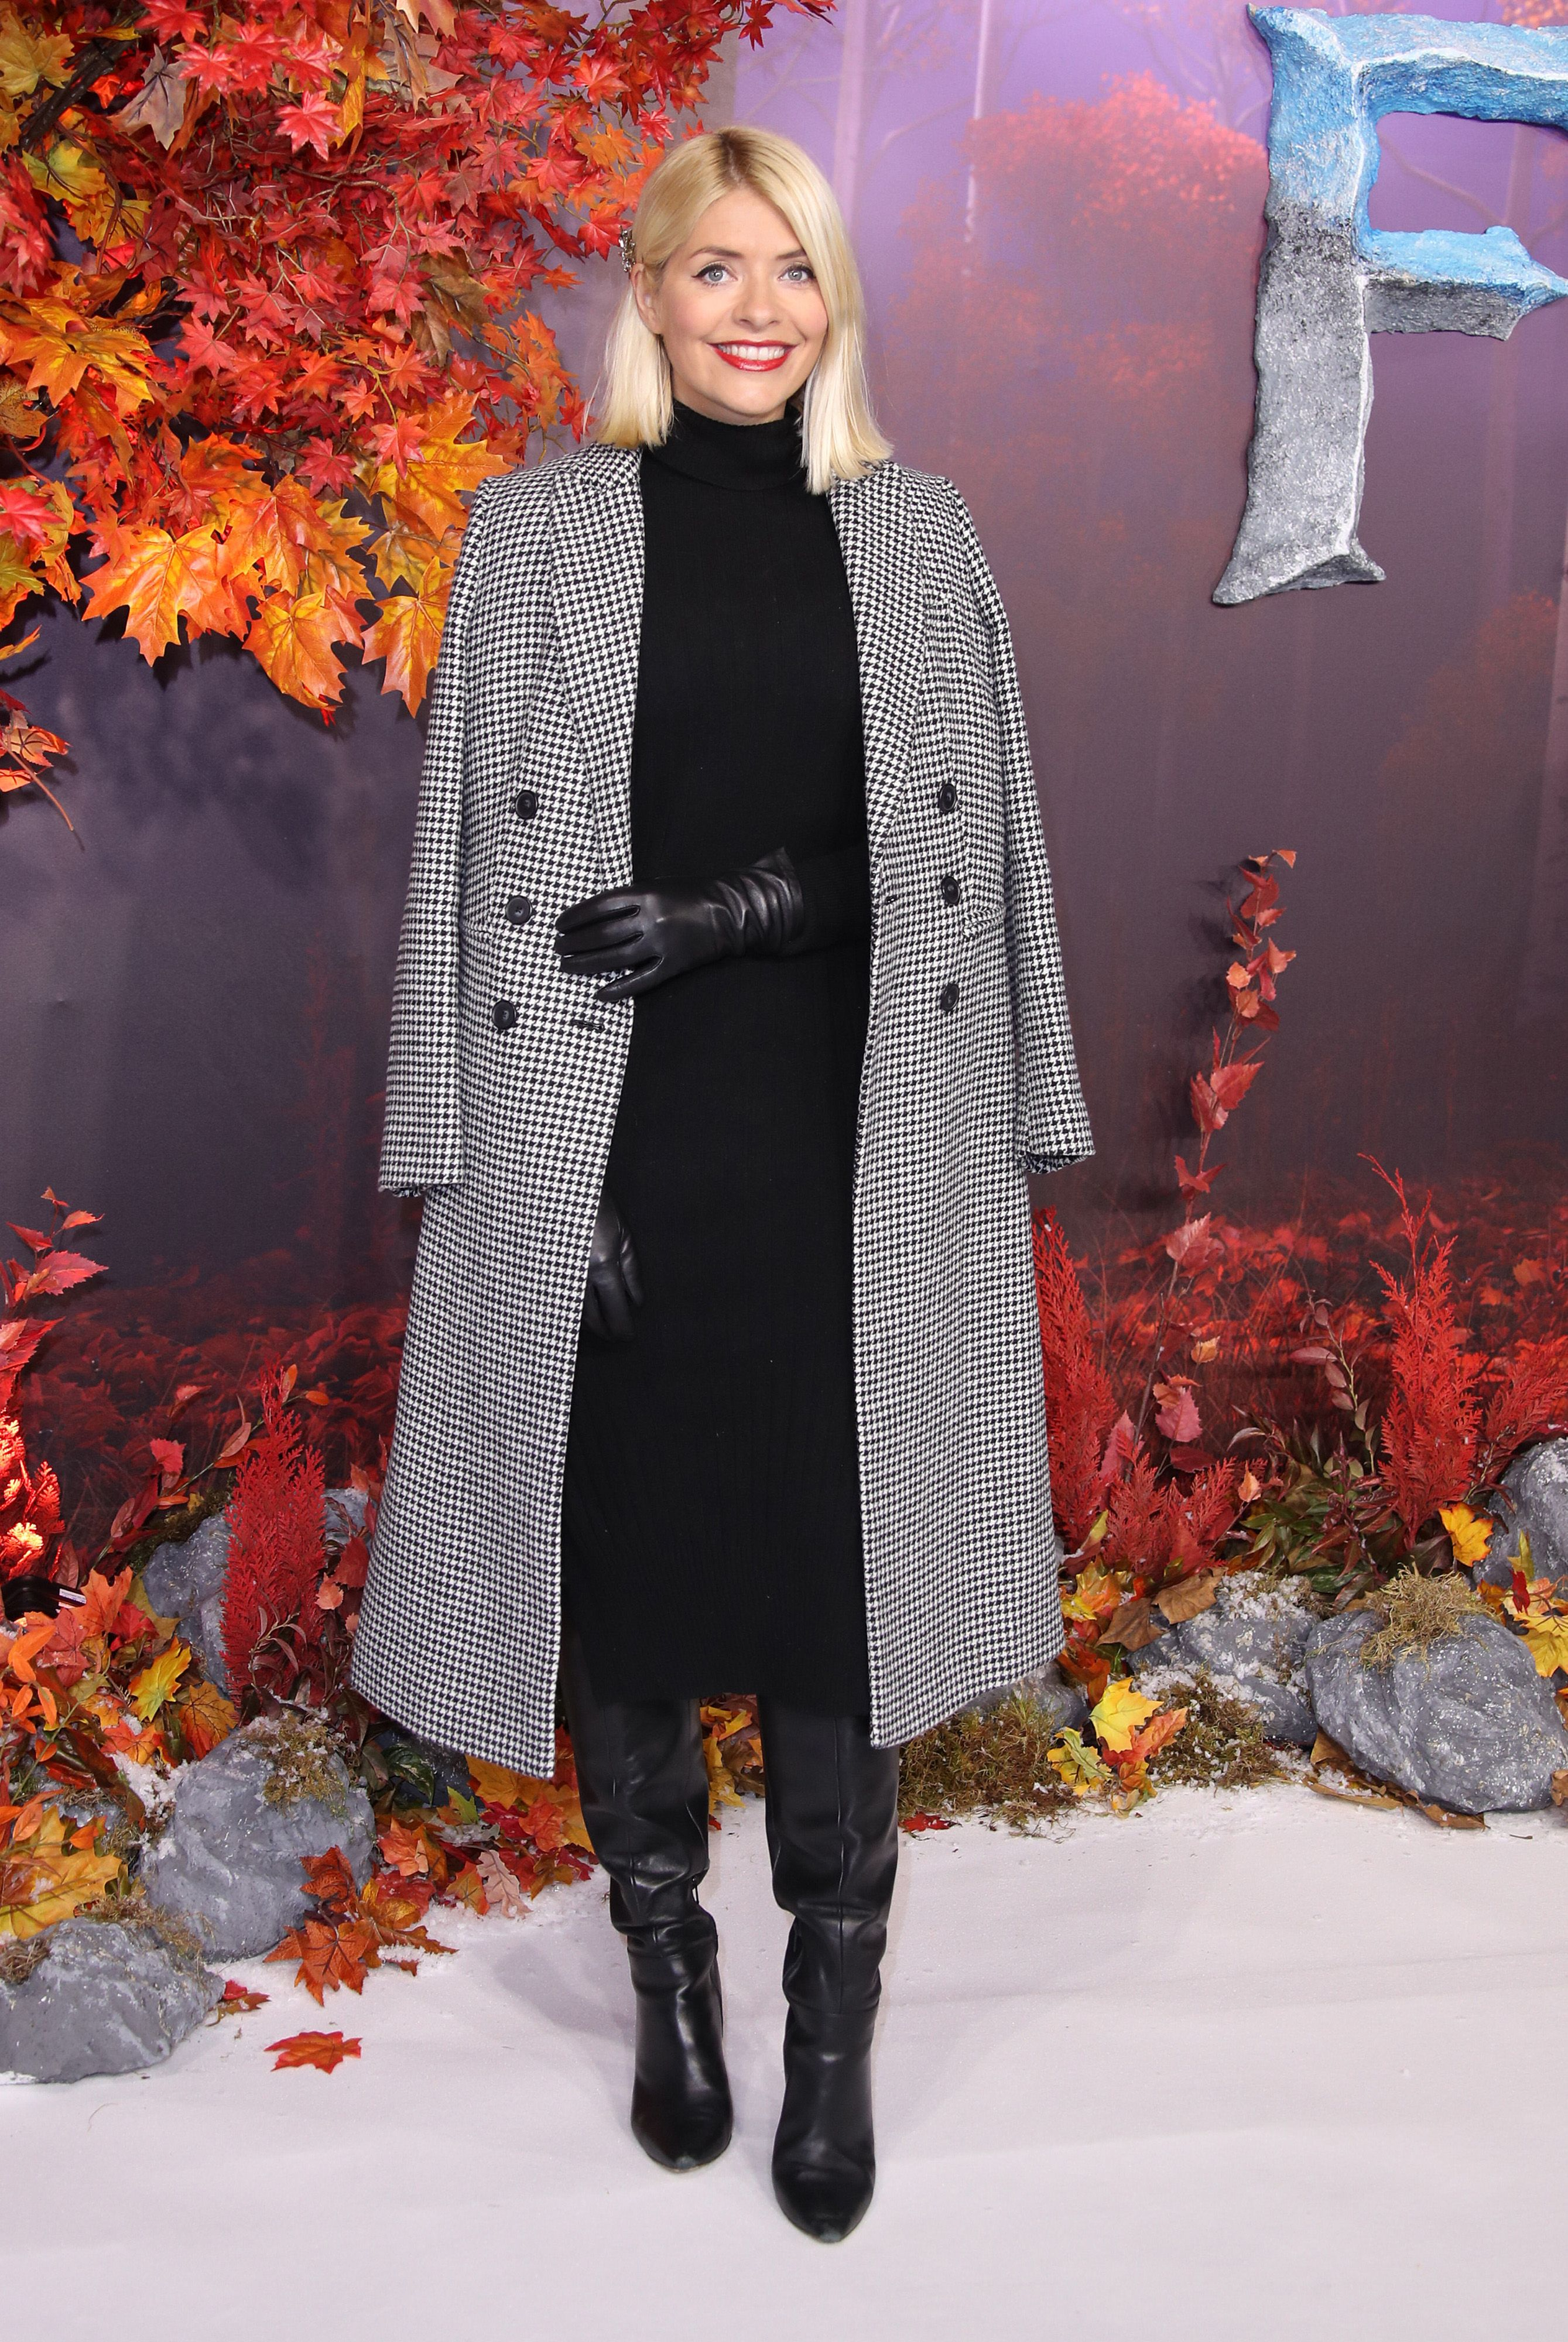 Holly Willoughby wears on-trend Marks & Spencer checked coat